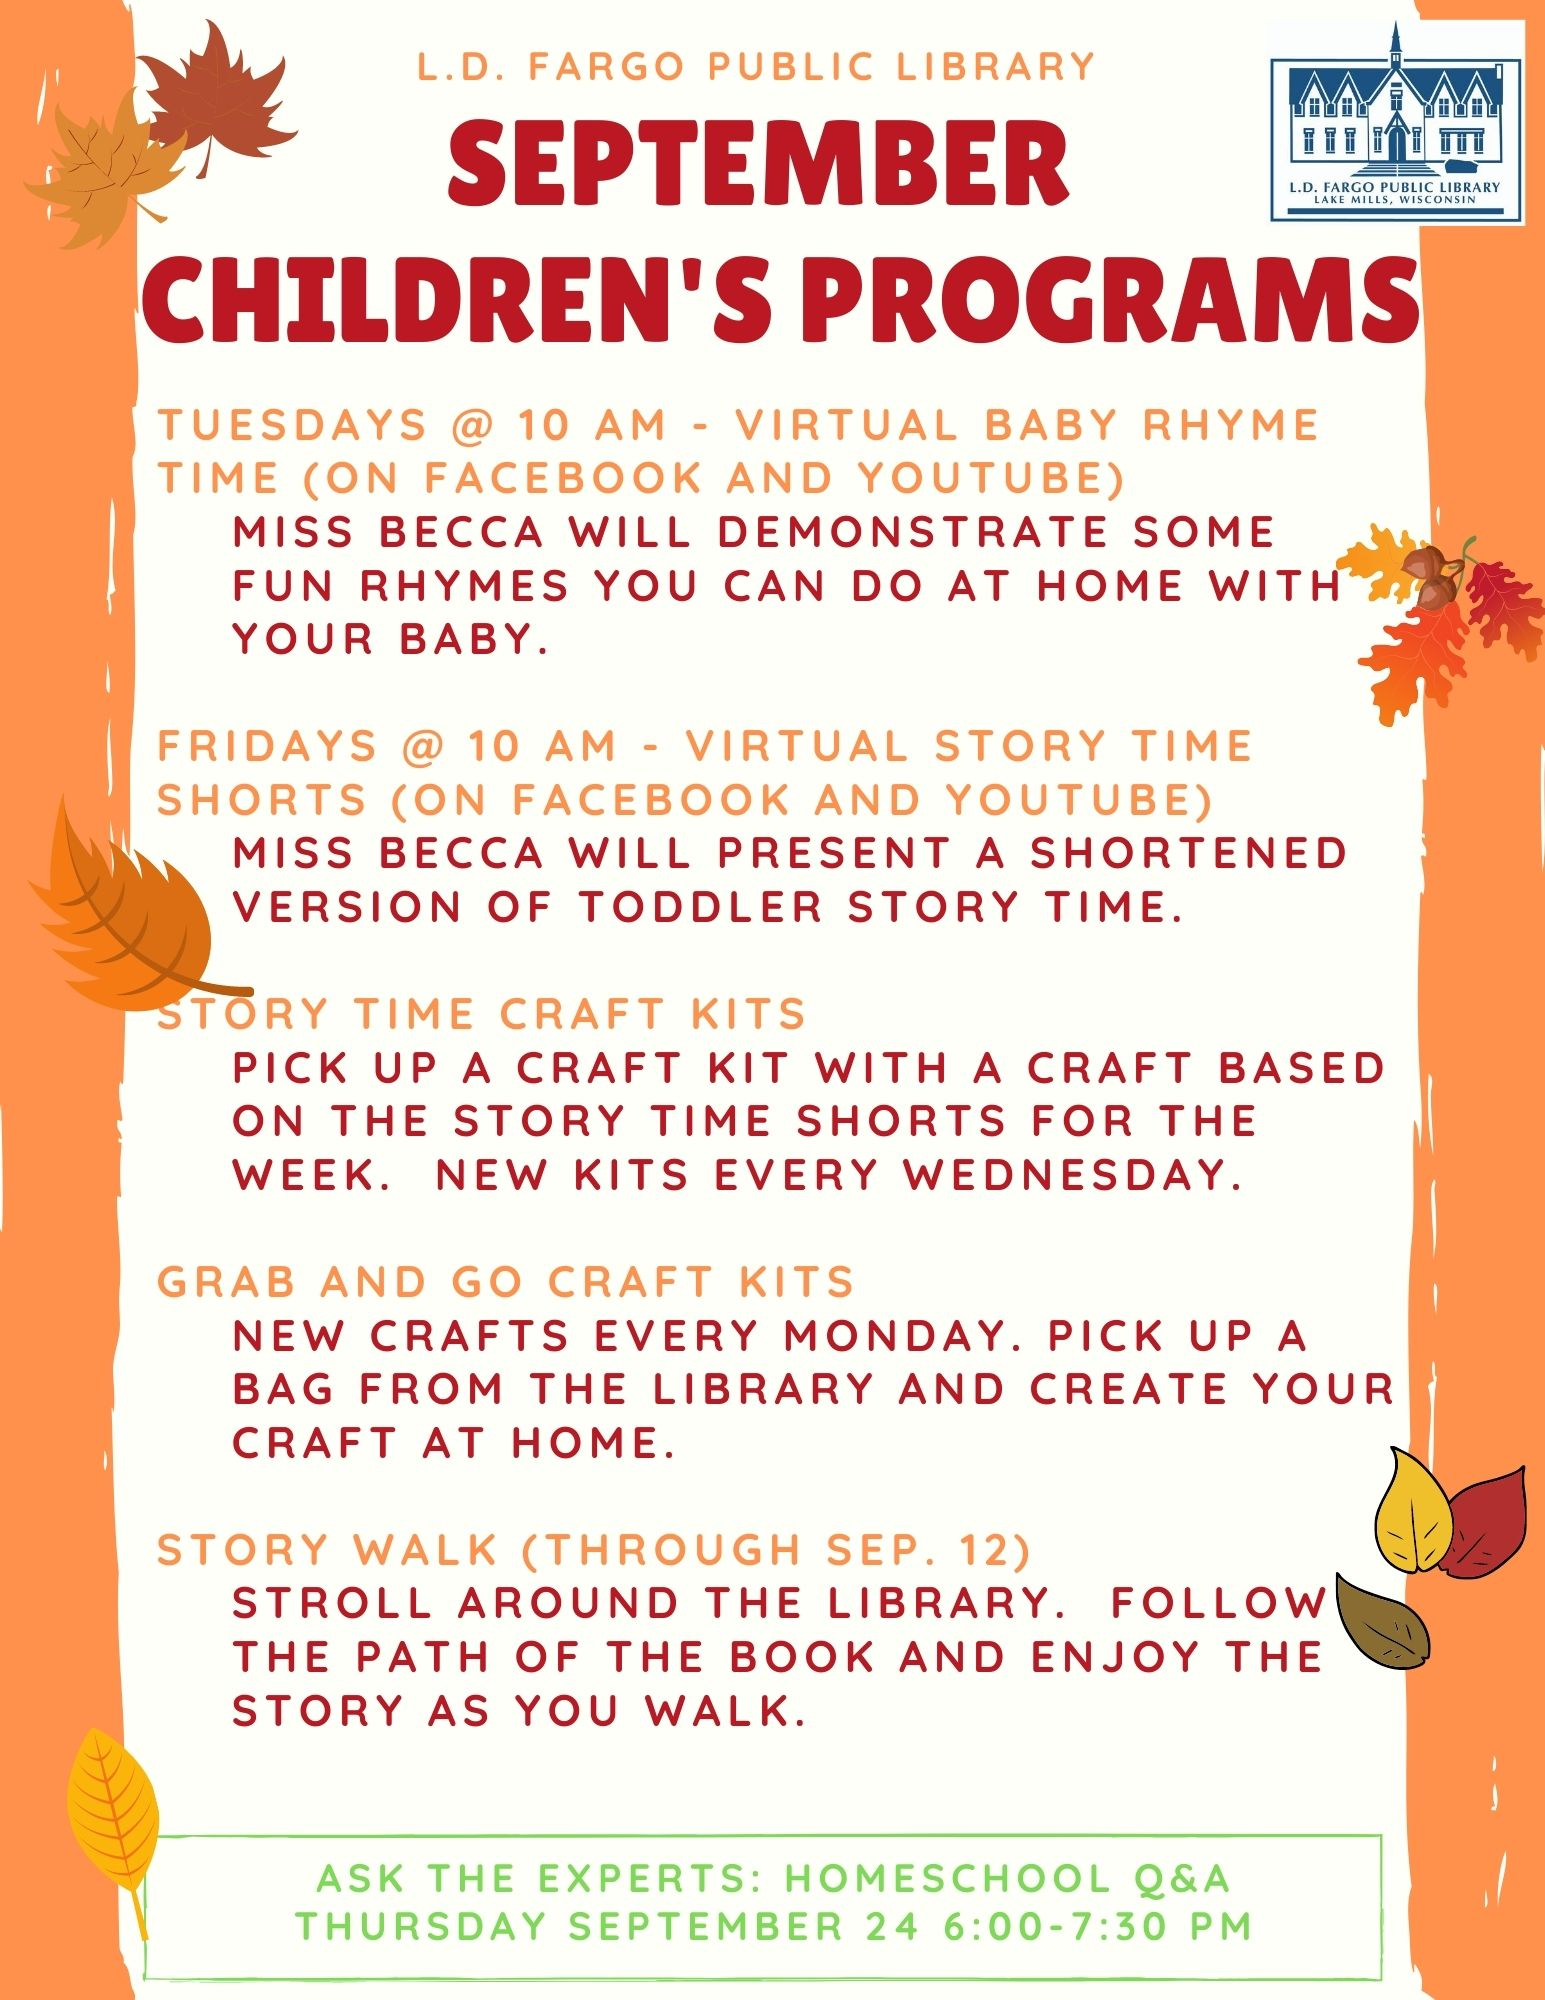 September Programs for kids.  Grab and Go Craft Kits: PIck up a bag at the library with all the supplies to make a craft at home! Virtual Story Time Shorts: Miss Becca will present a shortened version of toddler story time.  Fridays at 10 AM on YouTube and Facebook. Virtual Baby Rhyme TIme: Miss Becca will demonstrate some fun rhymes you can do at home with your baby.  Tuesdays at 10 AM on YouTube and Facebook. Story Walk: Take a stroll around the library. Follow the path of the book and enjoy the story as you walk! Story Time Craft Kits: Pick up a craft kit with a craft based on the Story Time SHorts for the week.  New kits every wednesday. Ask the Experts: Homeschool Q&A Thursday September 24 6:00-7:30 PM.